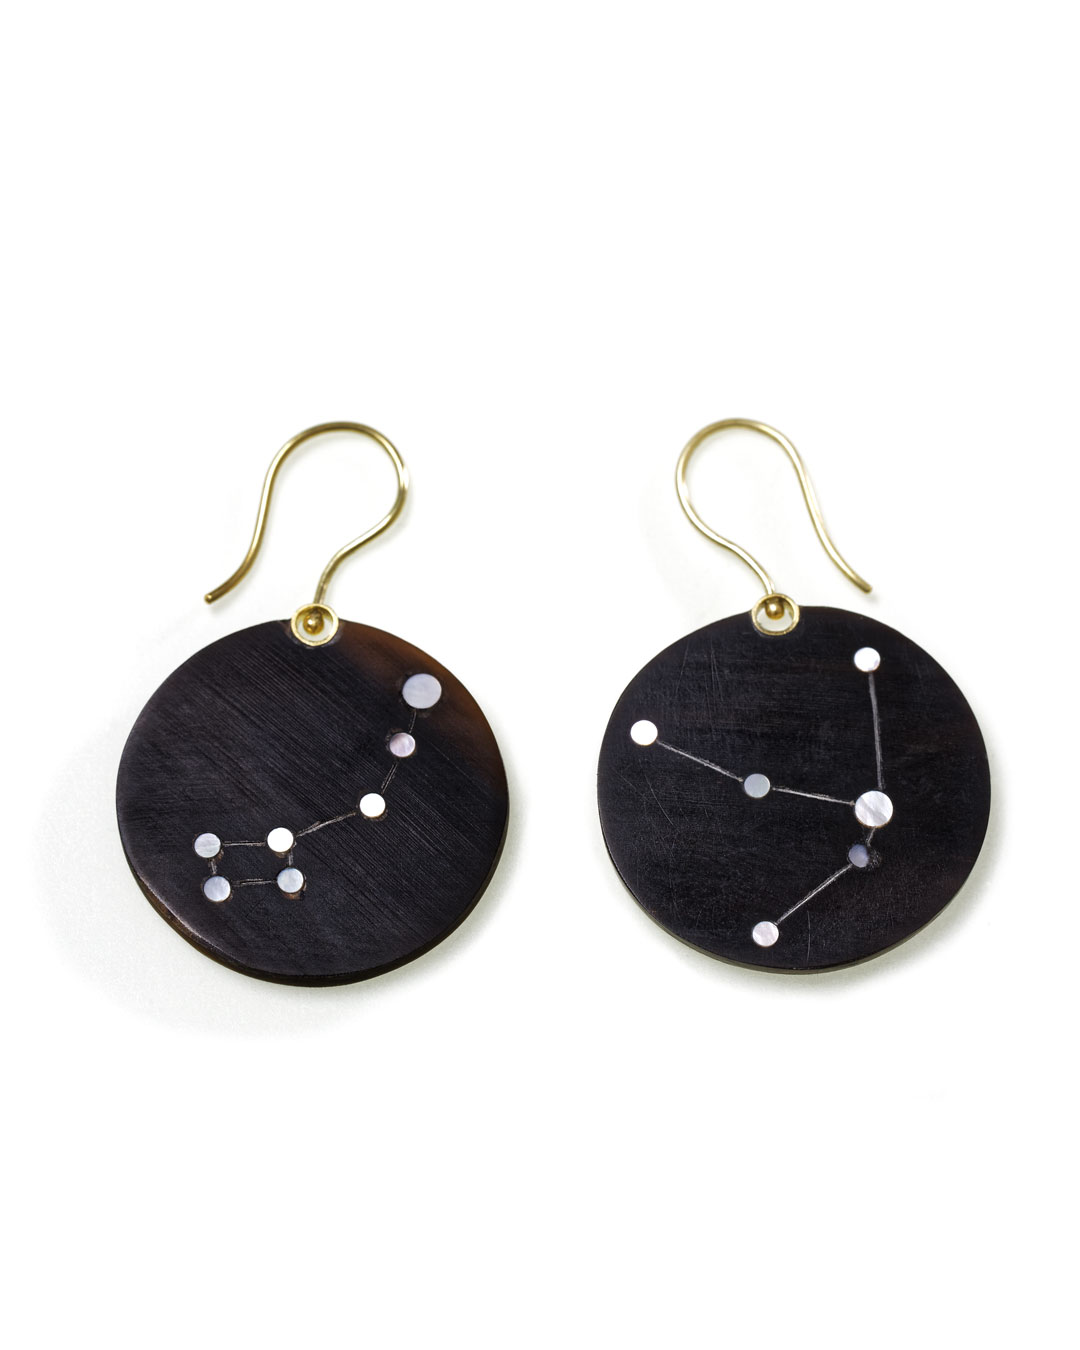 Julie Mollenhauer, untitled, 2015, earrings; buffalo horn, mother-of-pearl, 14ct gold, 50 x 31 x 2 mm, €1010